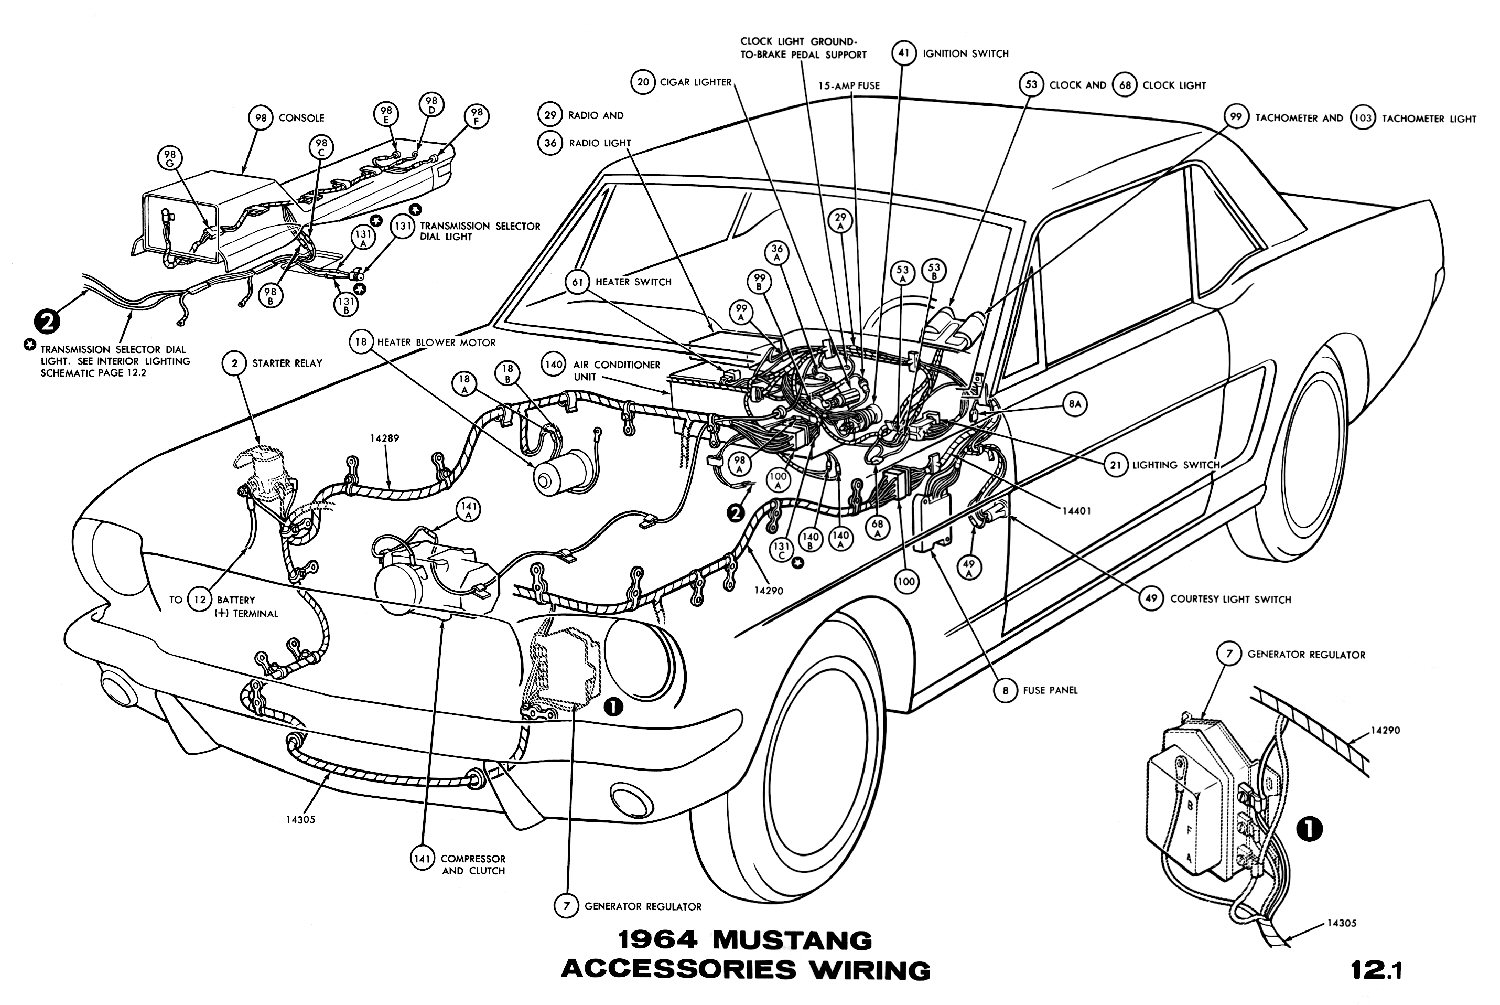 1964 Mustang Wiring Diagrams Average Joe Restoration 1948 Ford Generator Diagram Sm1964l Accessories Pictorial Or Schematic